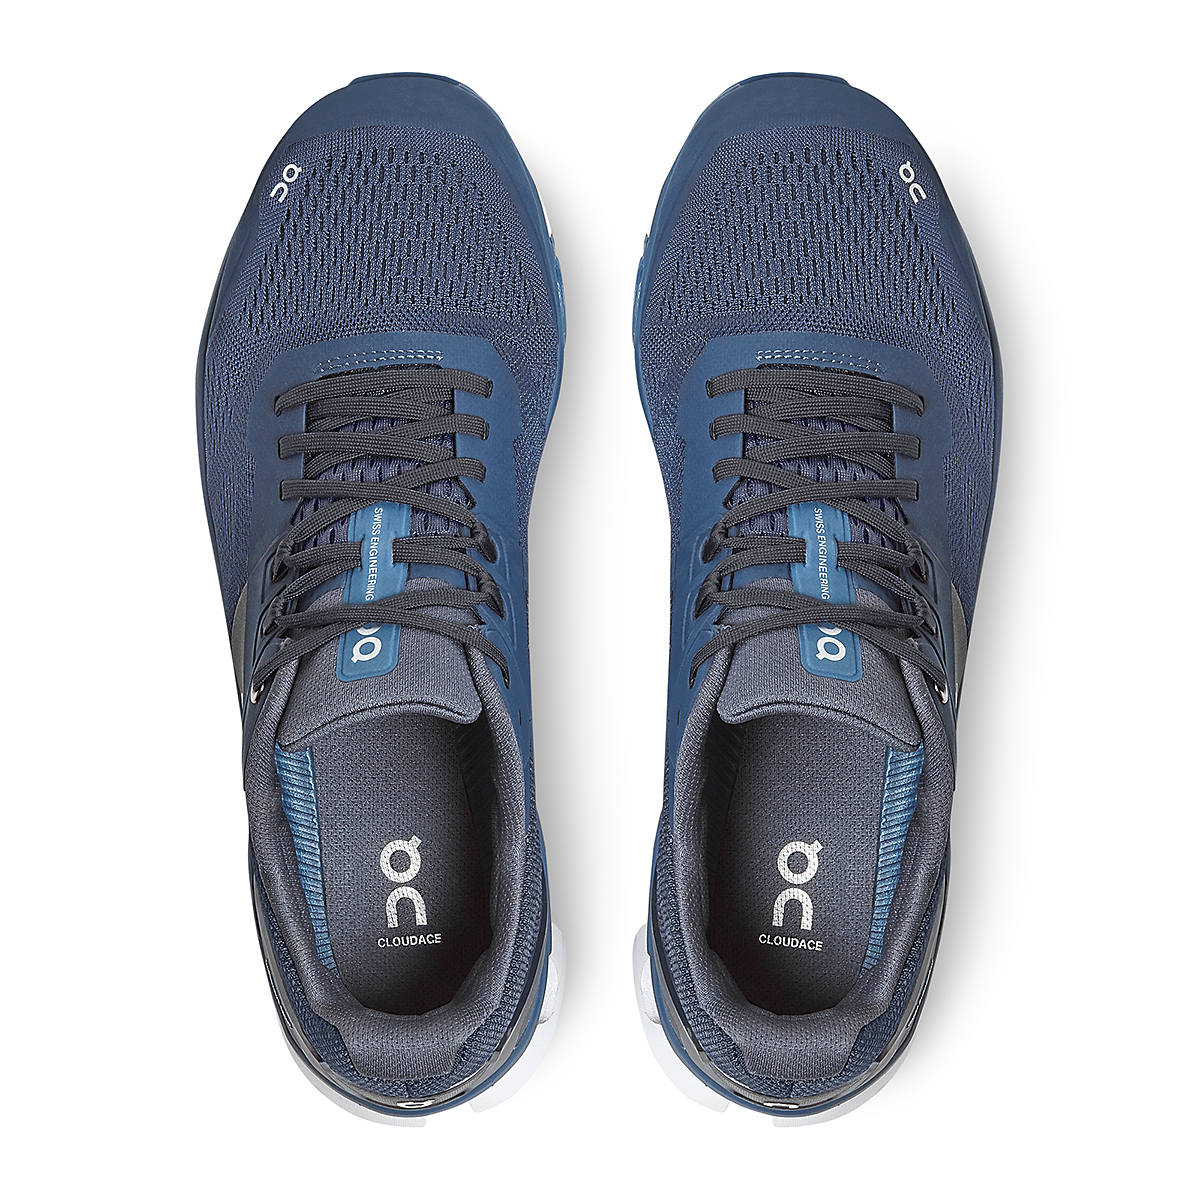 Men's On Cloudace Running Shoe - Color: Midnight   Navy - Size: 8 - Width: Regular, Midnight   Navy, large, image 5